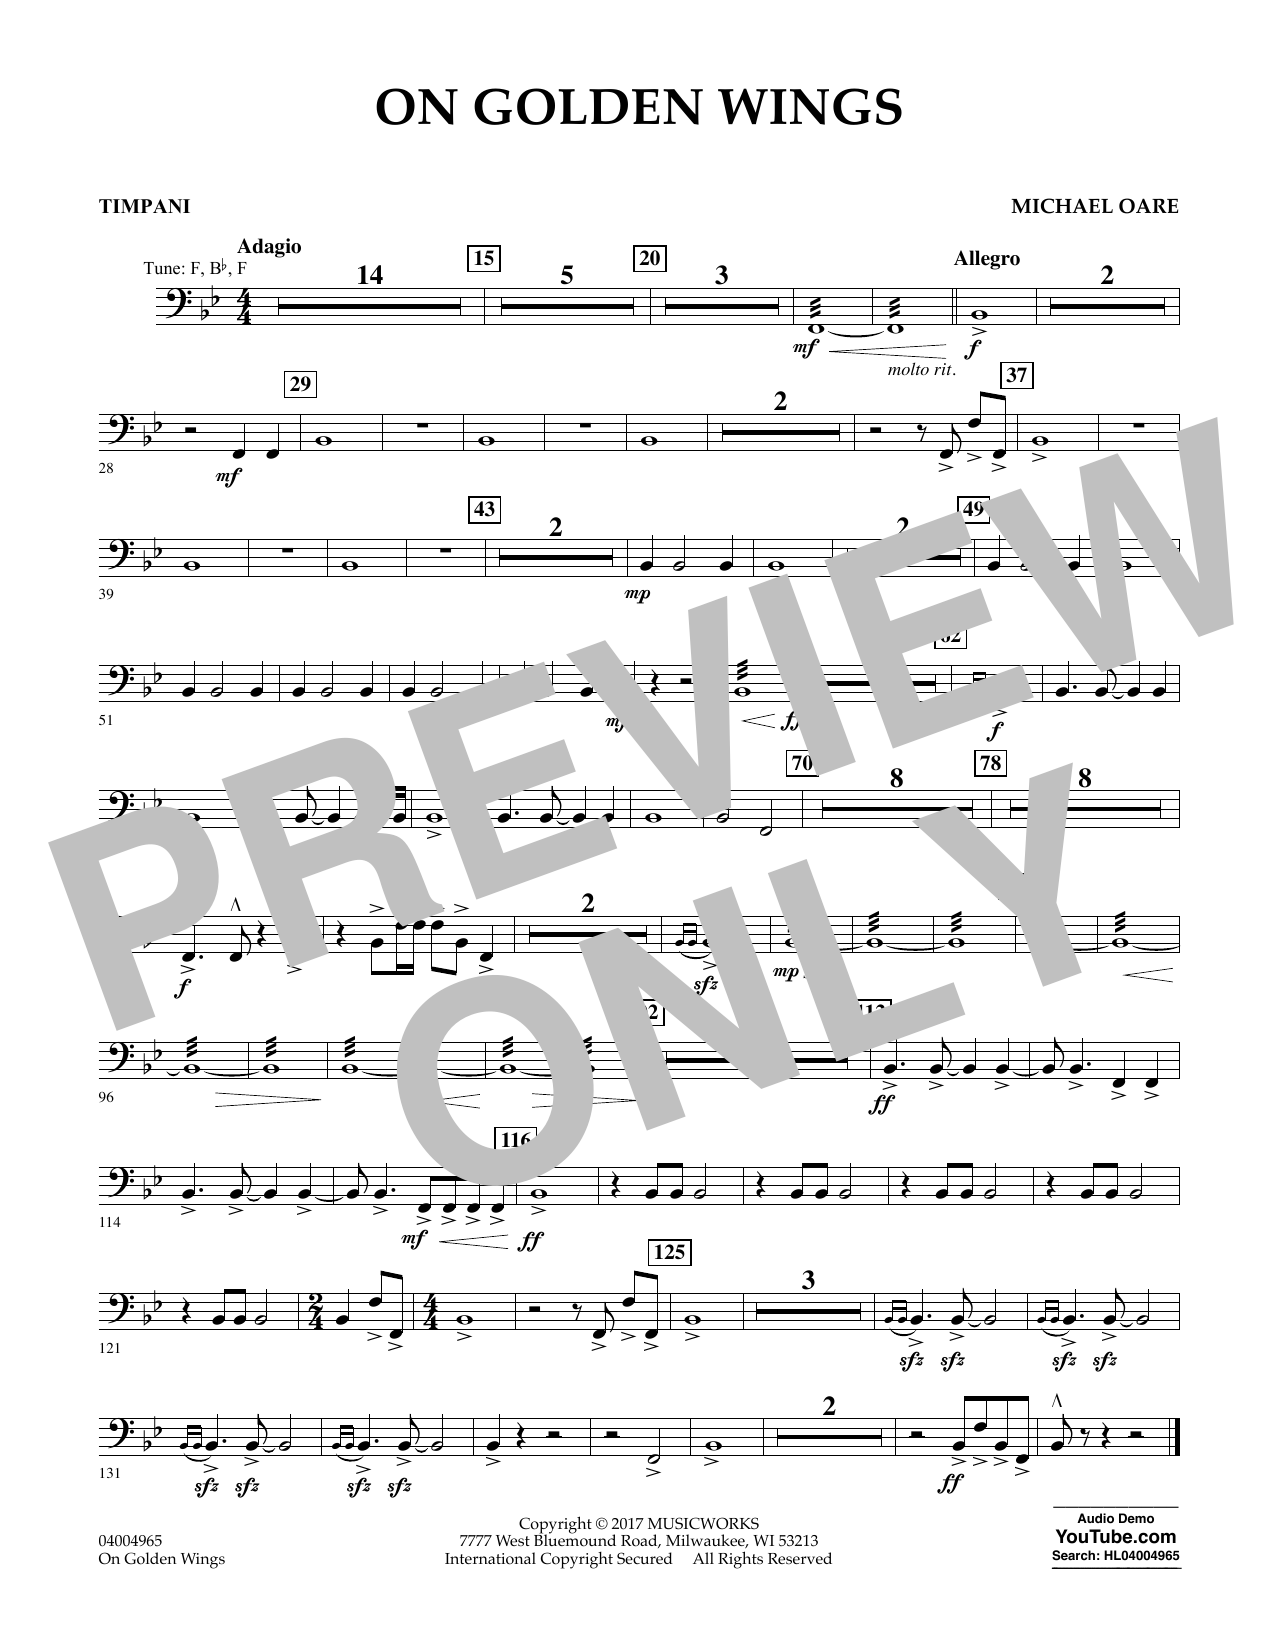 Michael Oare On Golden Wings - Timpani sheet music notes and chords. Download Printable PDF.